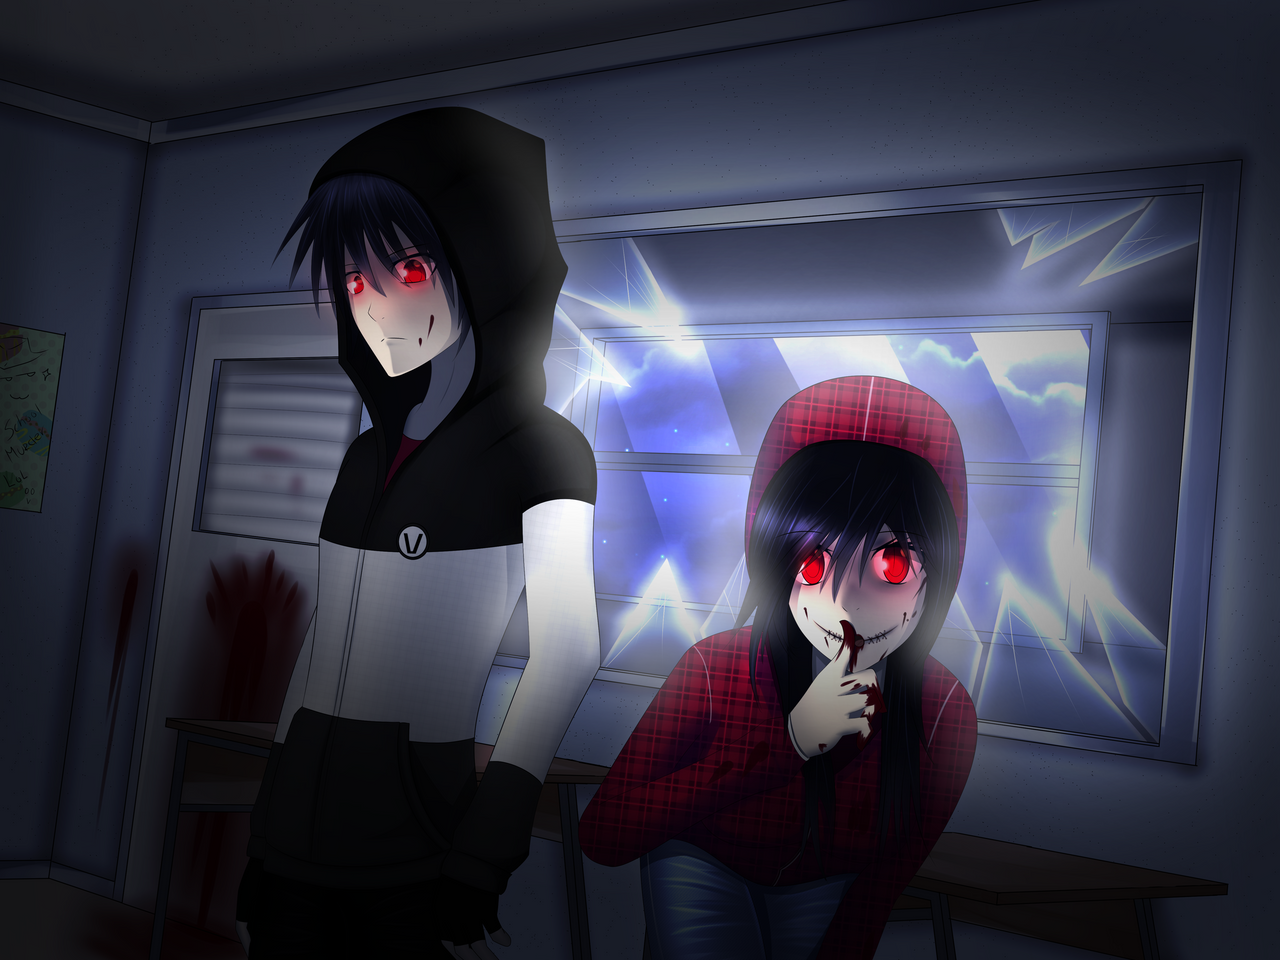 AT with Fiolee4everMarshyyFi : M and F 'v' by amini101